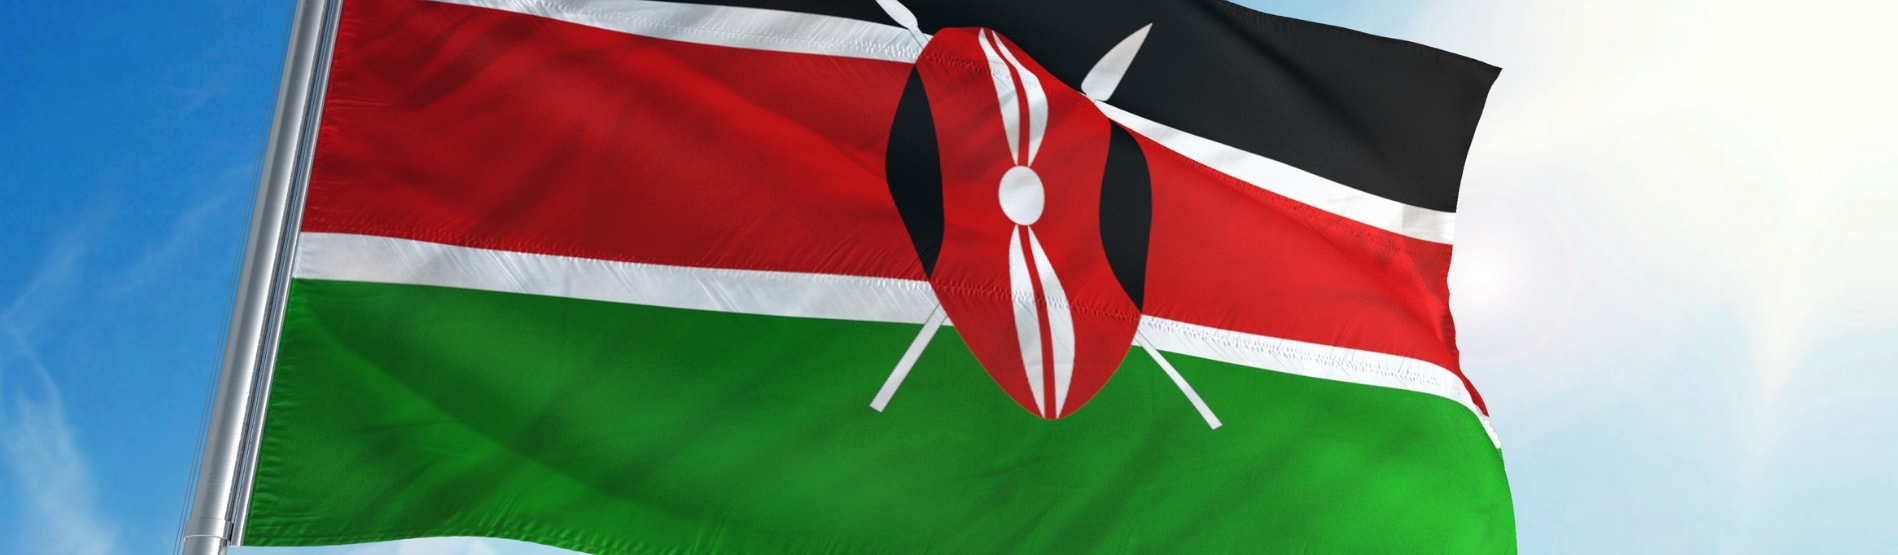 Kenyan flag blowing in the breeze.